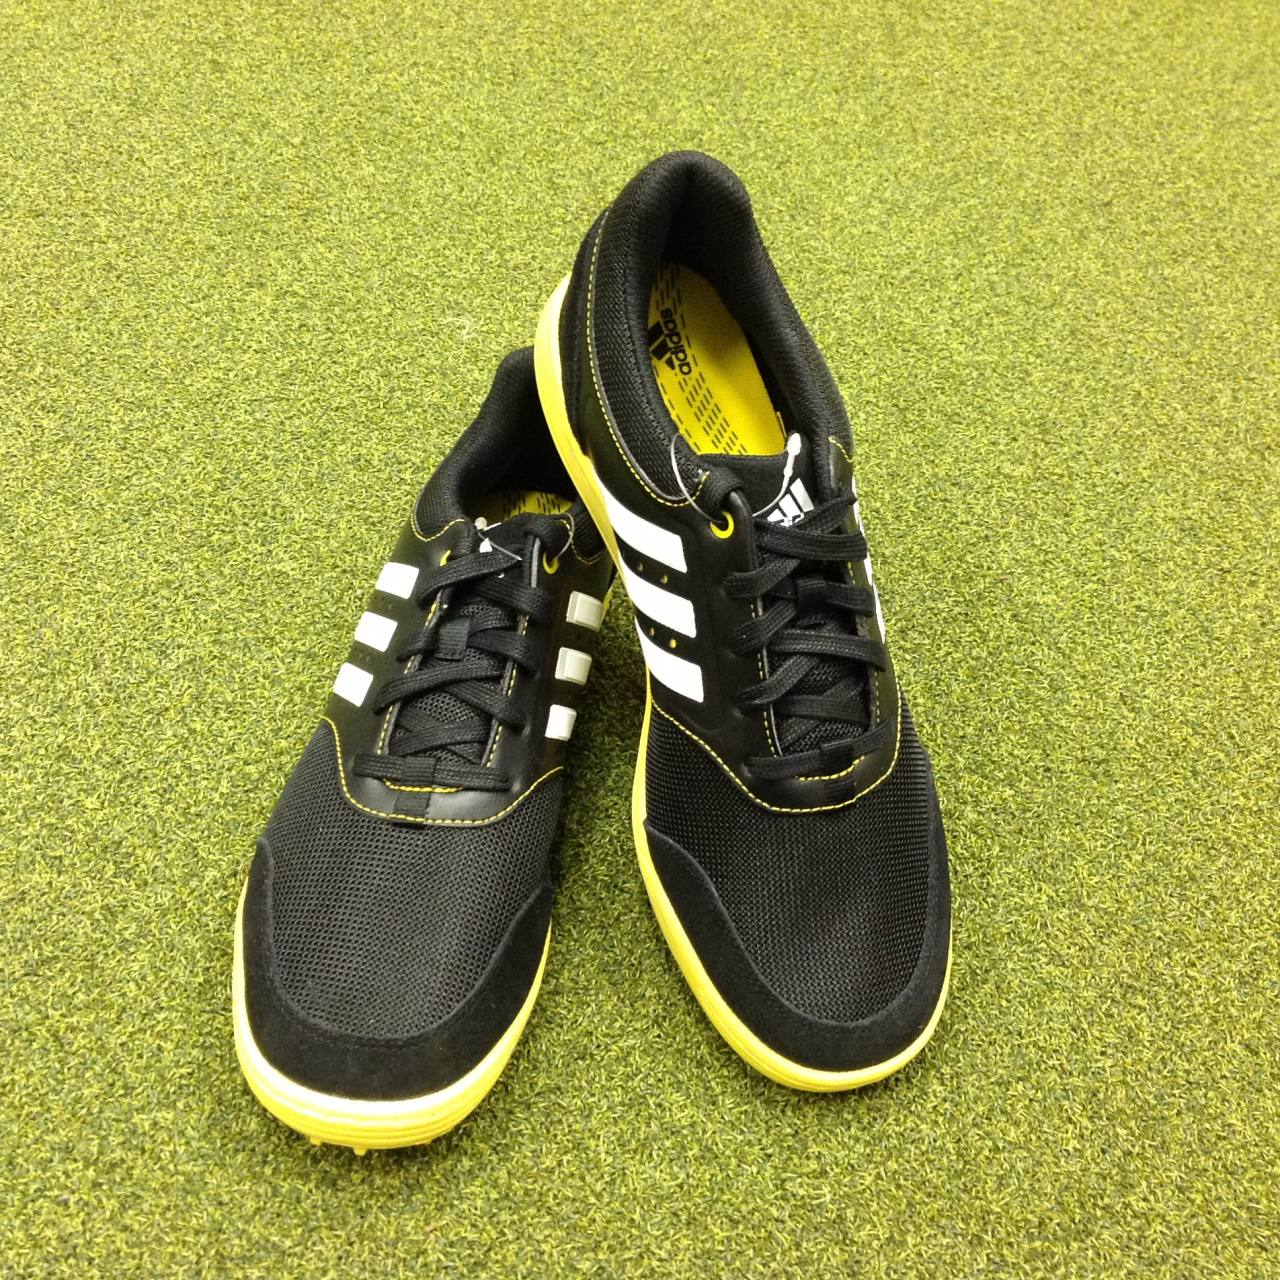 6e0c98b12f0303 NEW Adidas Adicross III Golf Shoes – UK Size 8.5 – US 9 – EU 42 2/3 ...